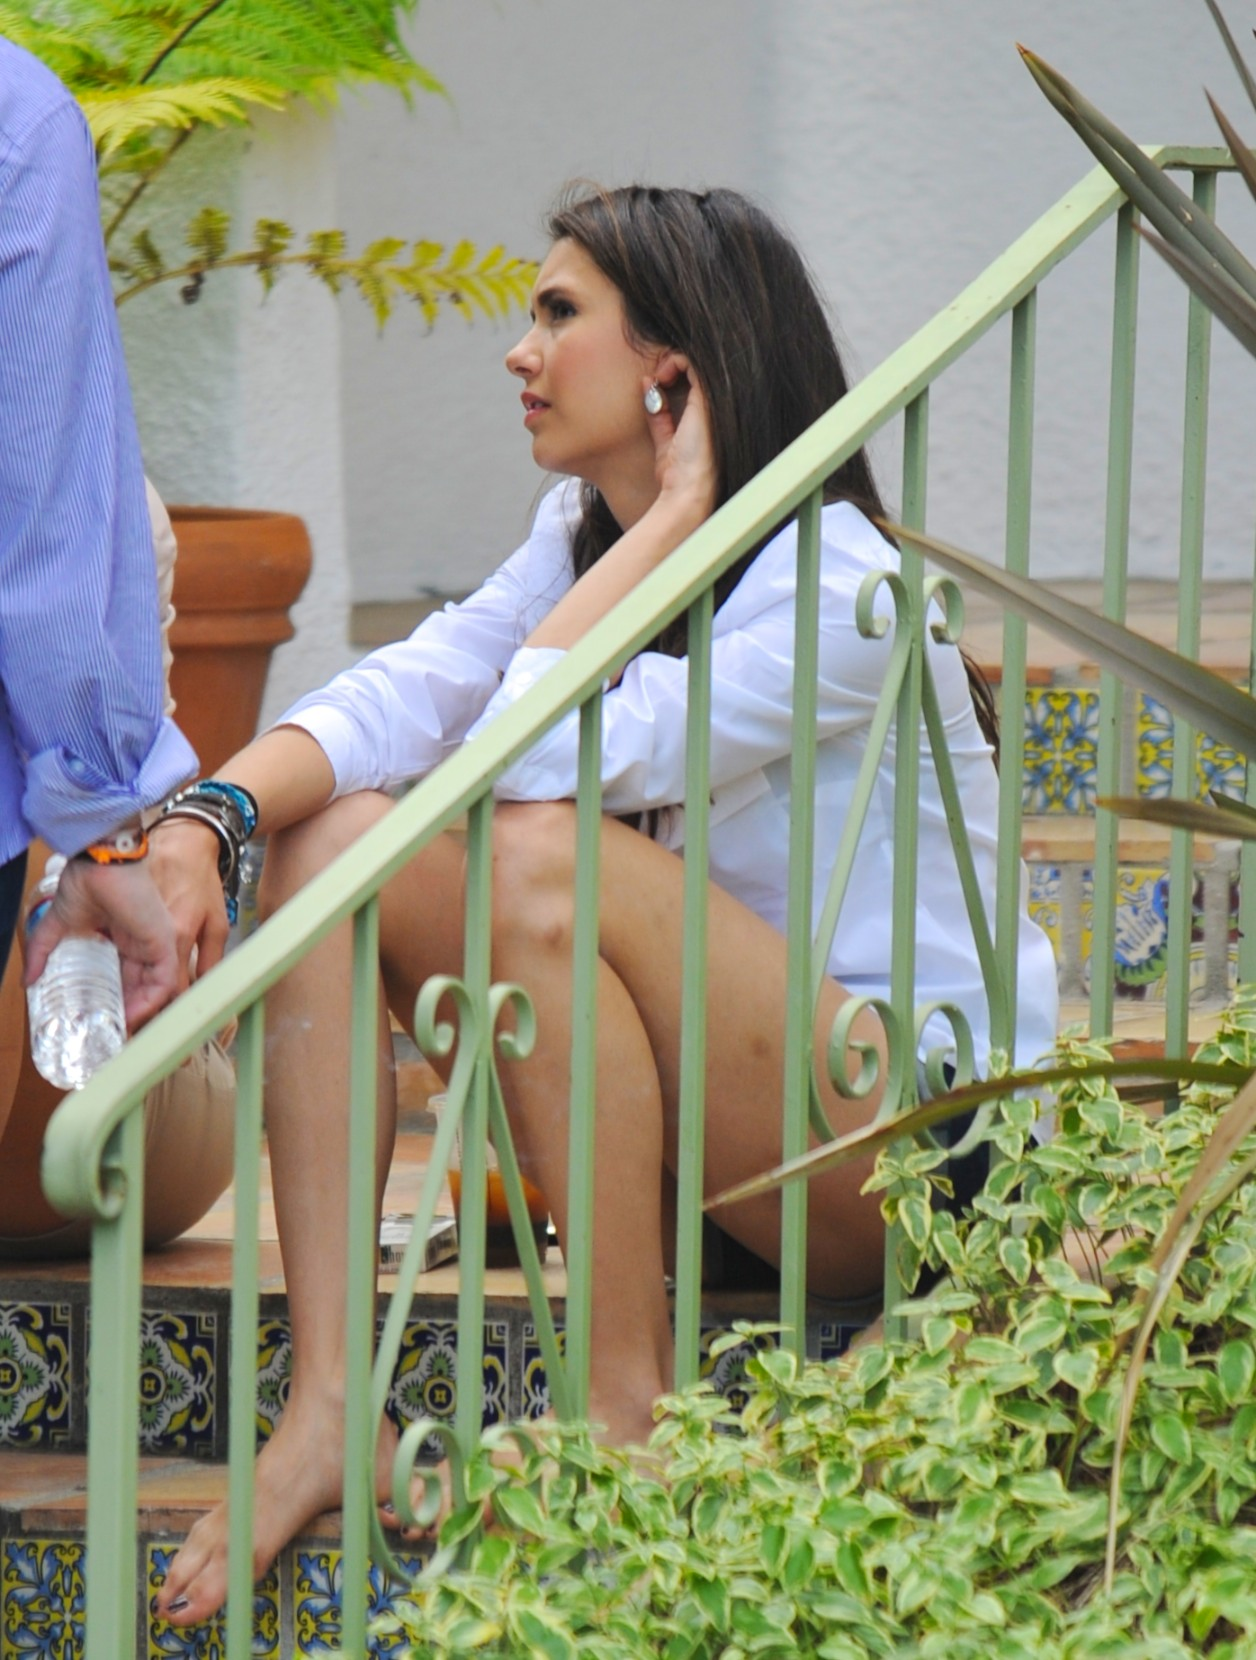 Nina - On the set of a photoshoot in West Hollywood - July 07, 2011